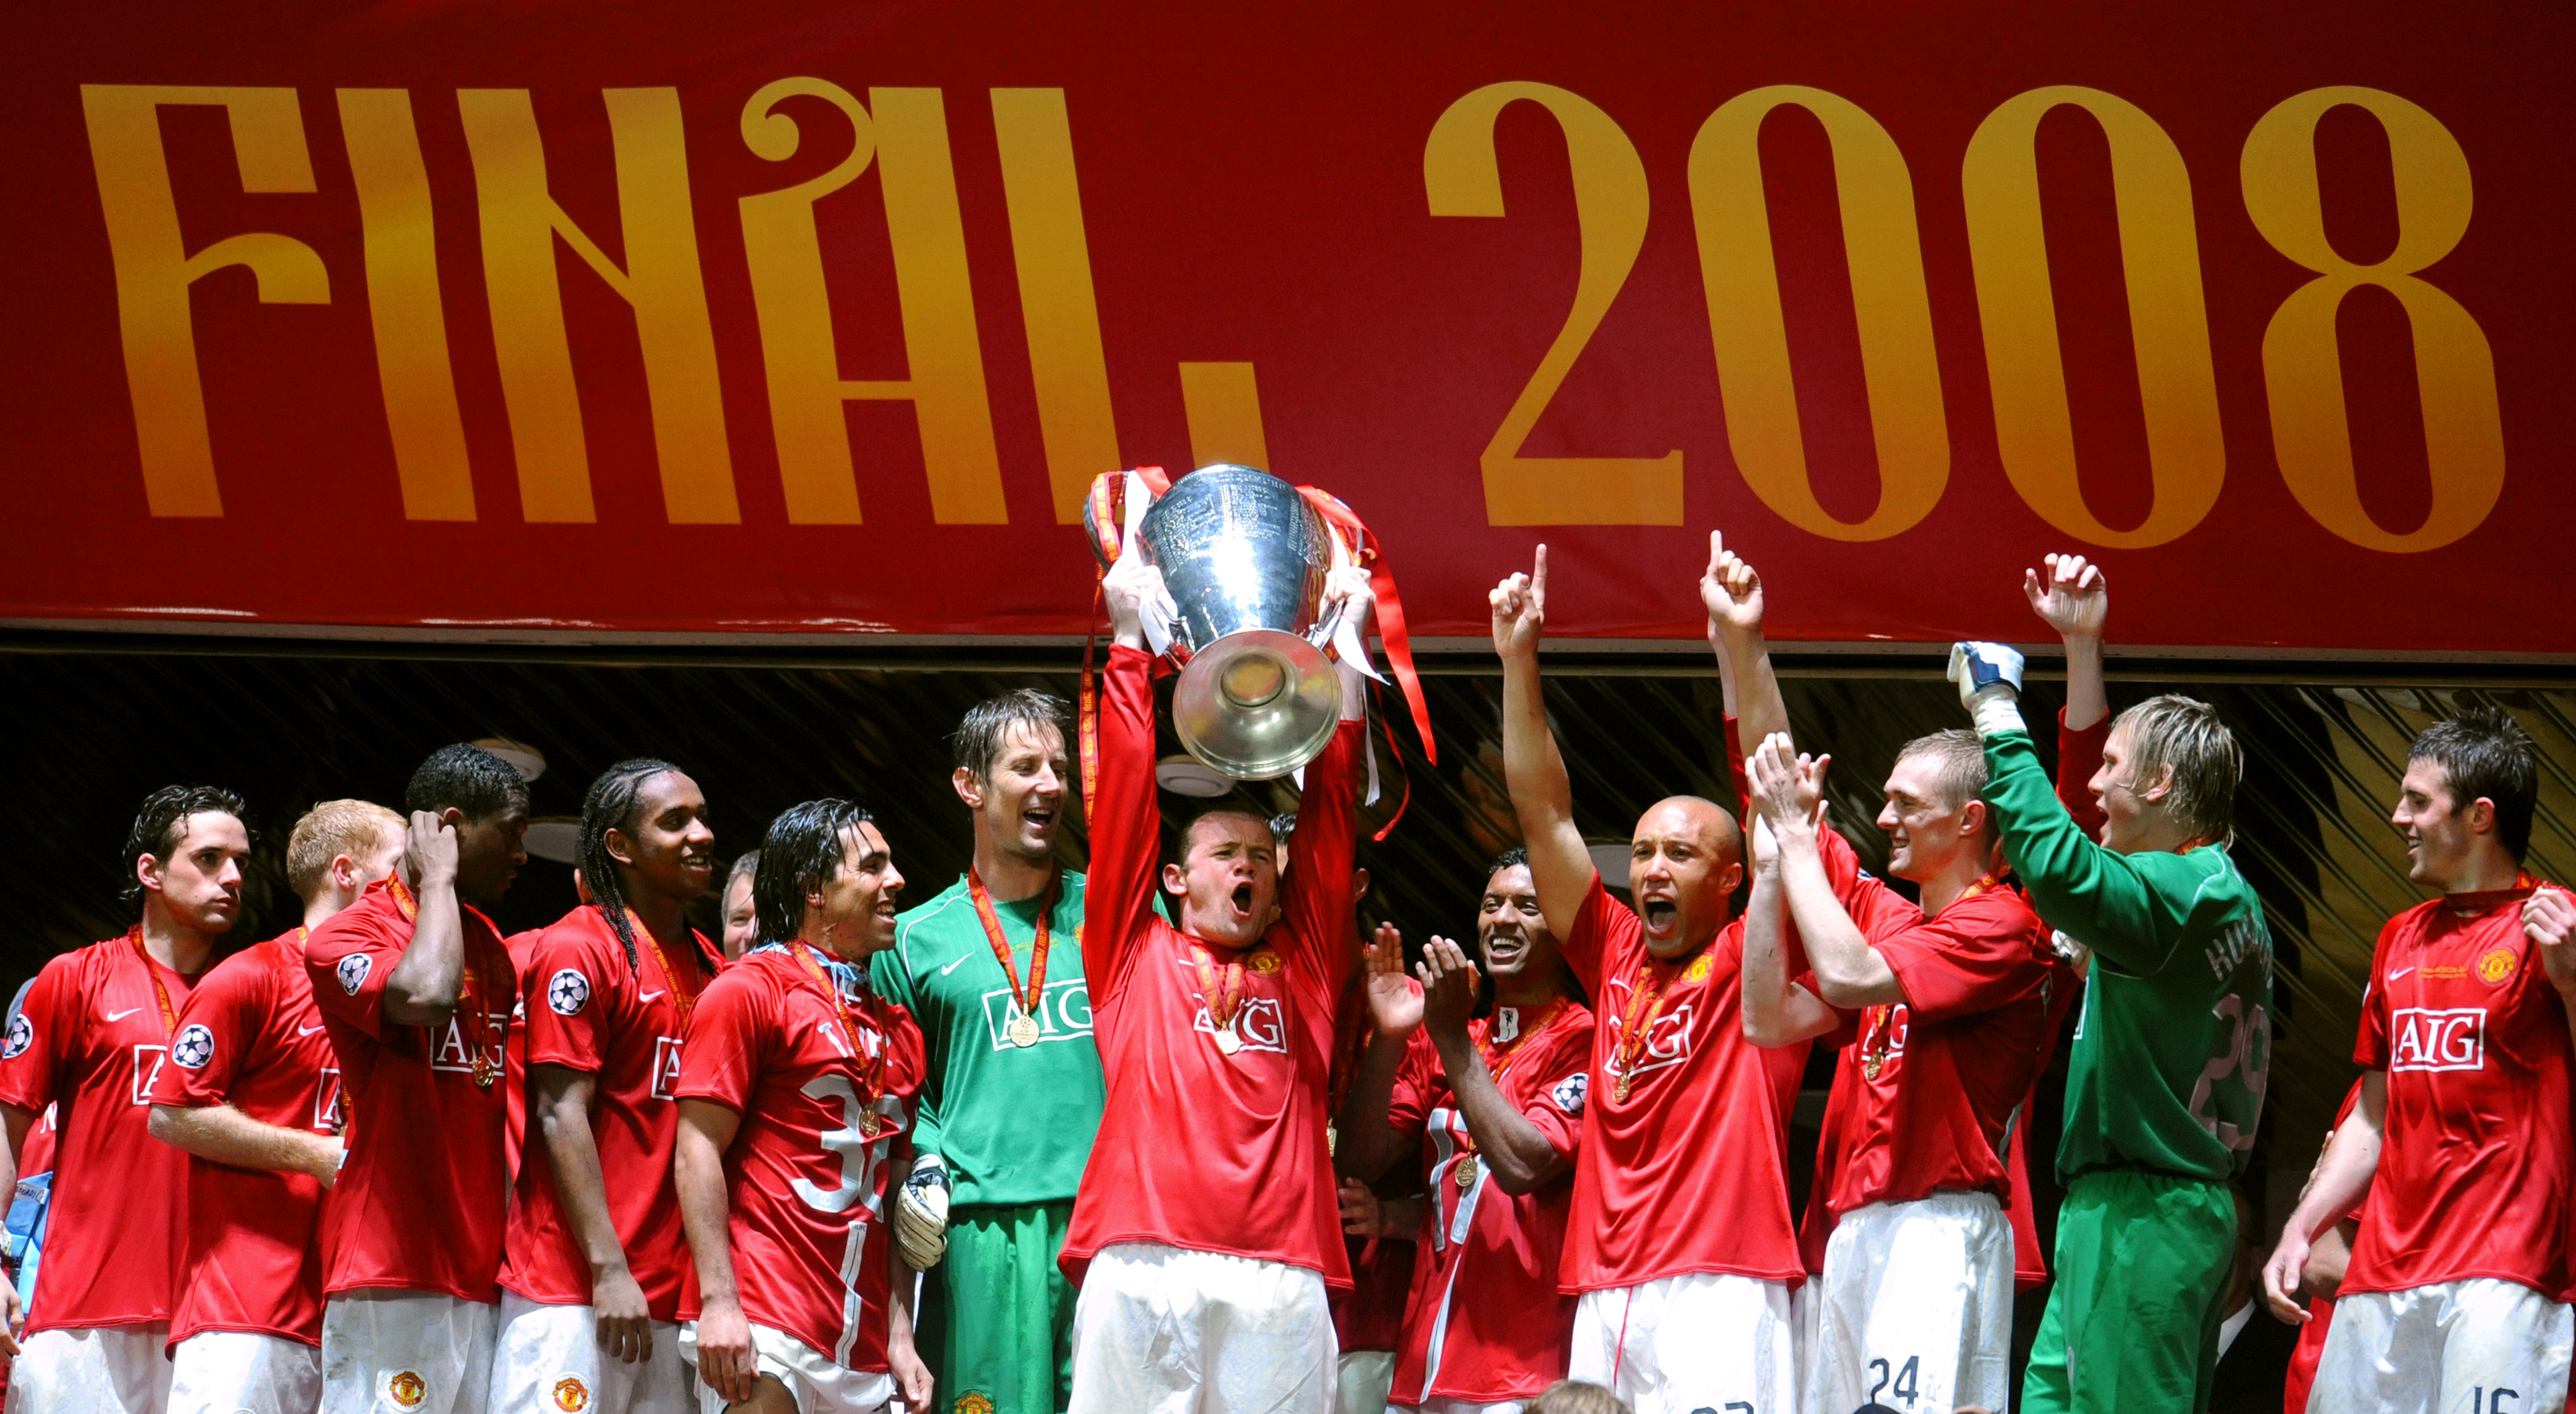 Wayne Rooney lifts the Champions League trophy with Manchester United